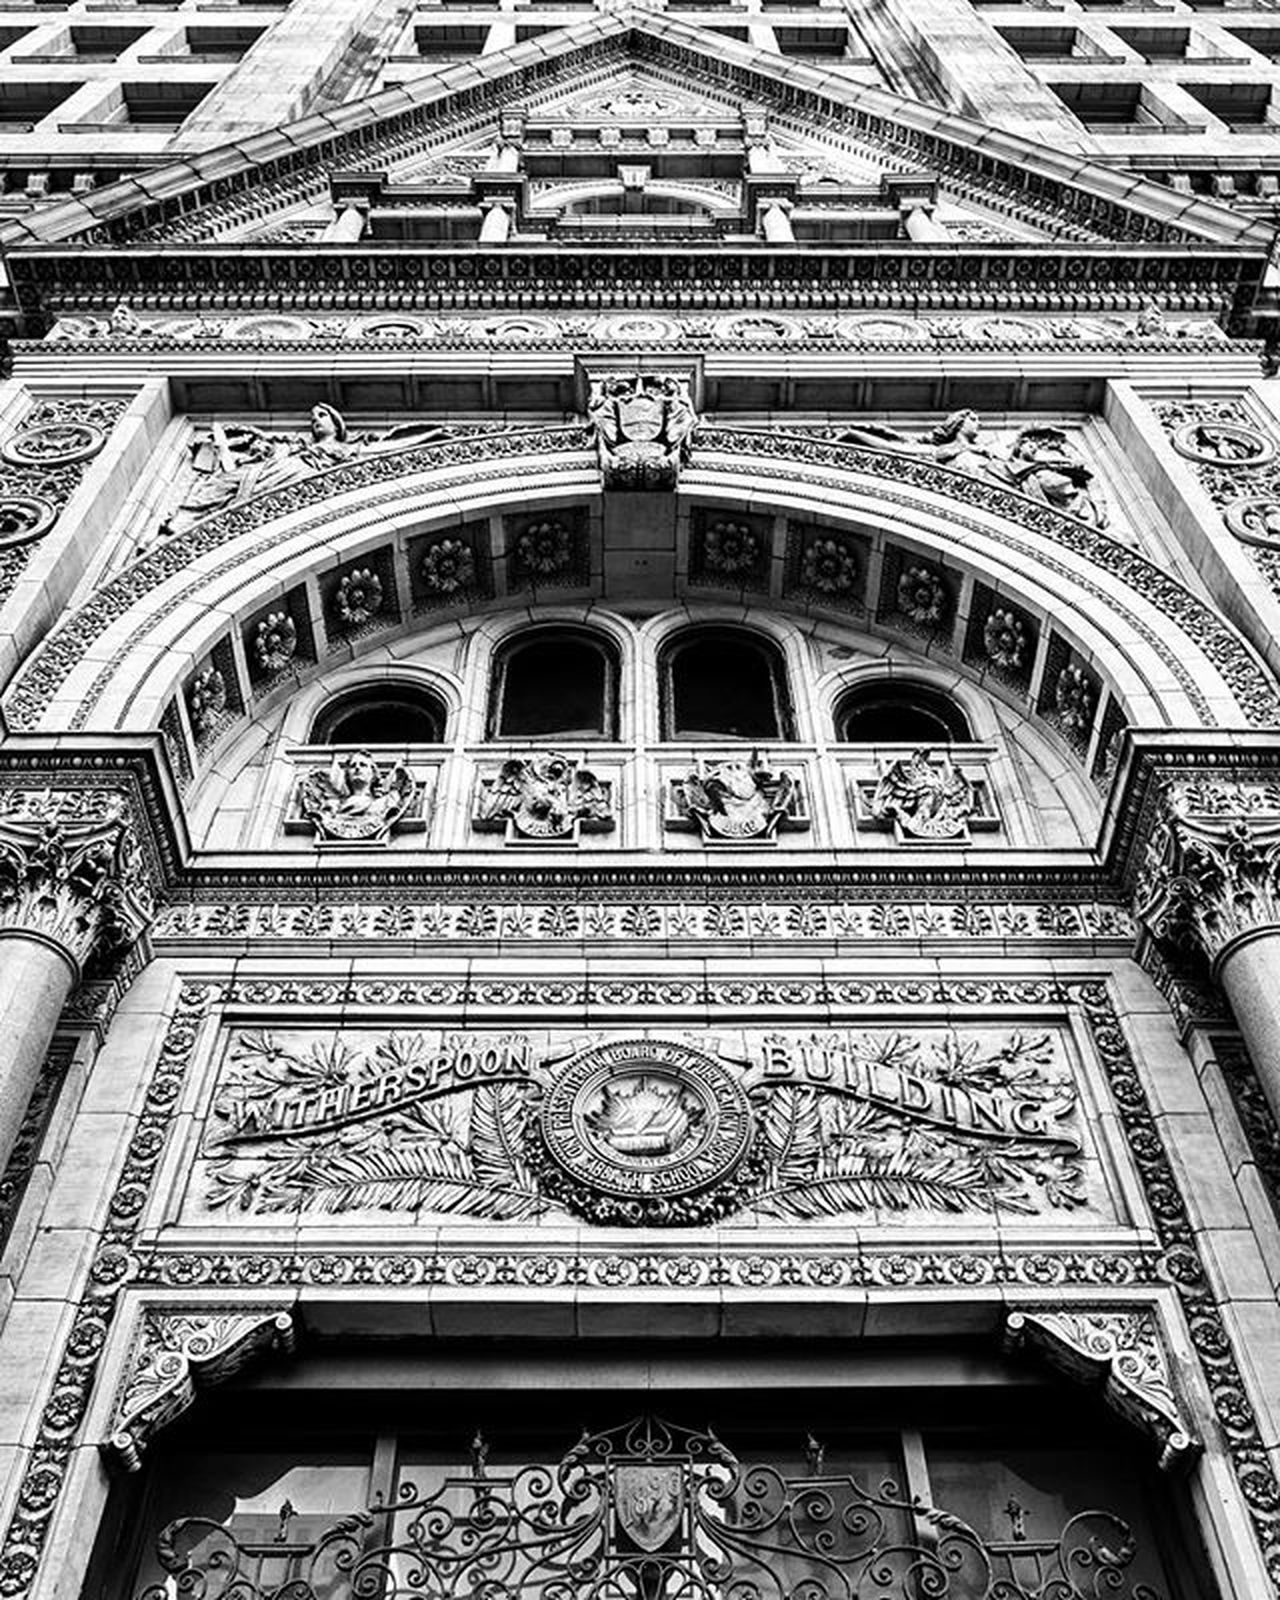 All in the Details Architecture Art_chitecture_ Phillyarchitecture Philadelphia Philly Igers_philly Igers_philly_street Citylifearchitecture Citystreets Cityholder Whyilovephilly Savephilly Liphillyfe Blackandwhite Bnw_igers Bnw_planet Bnw_life Bnw_captures Bnw_society Bnw_globe Bnw Bw Ig_contrast_bnw Rustlord_bnw Rustlord_archdesign rsa_architecture rsa_bnw IWalkedThisStreet lenkagrid